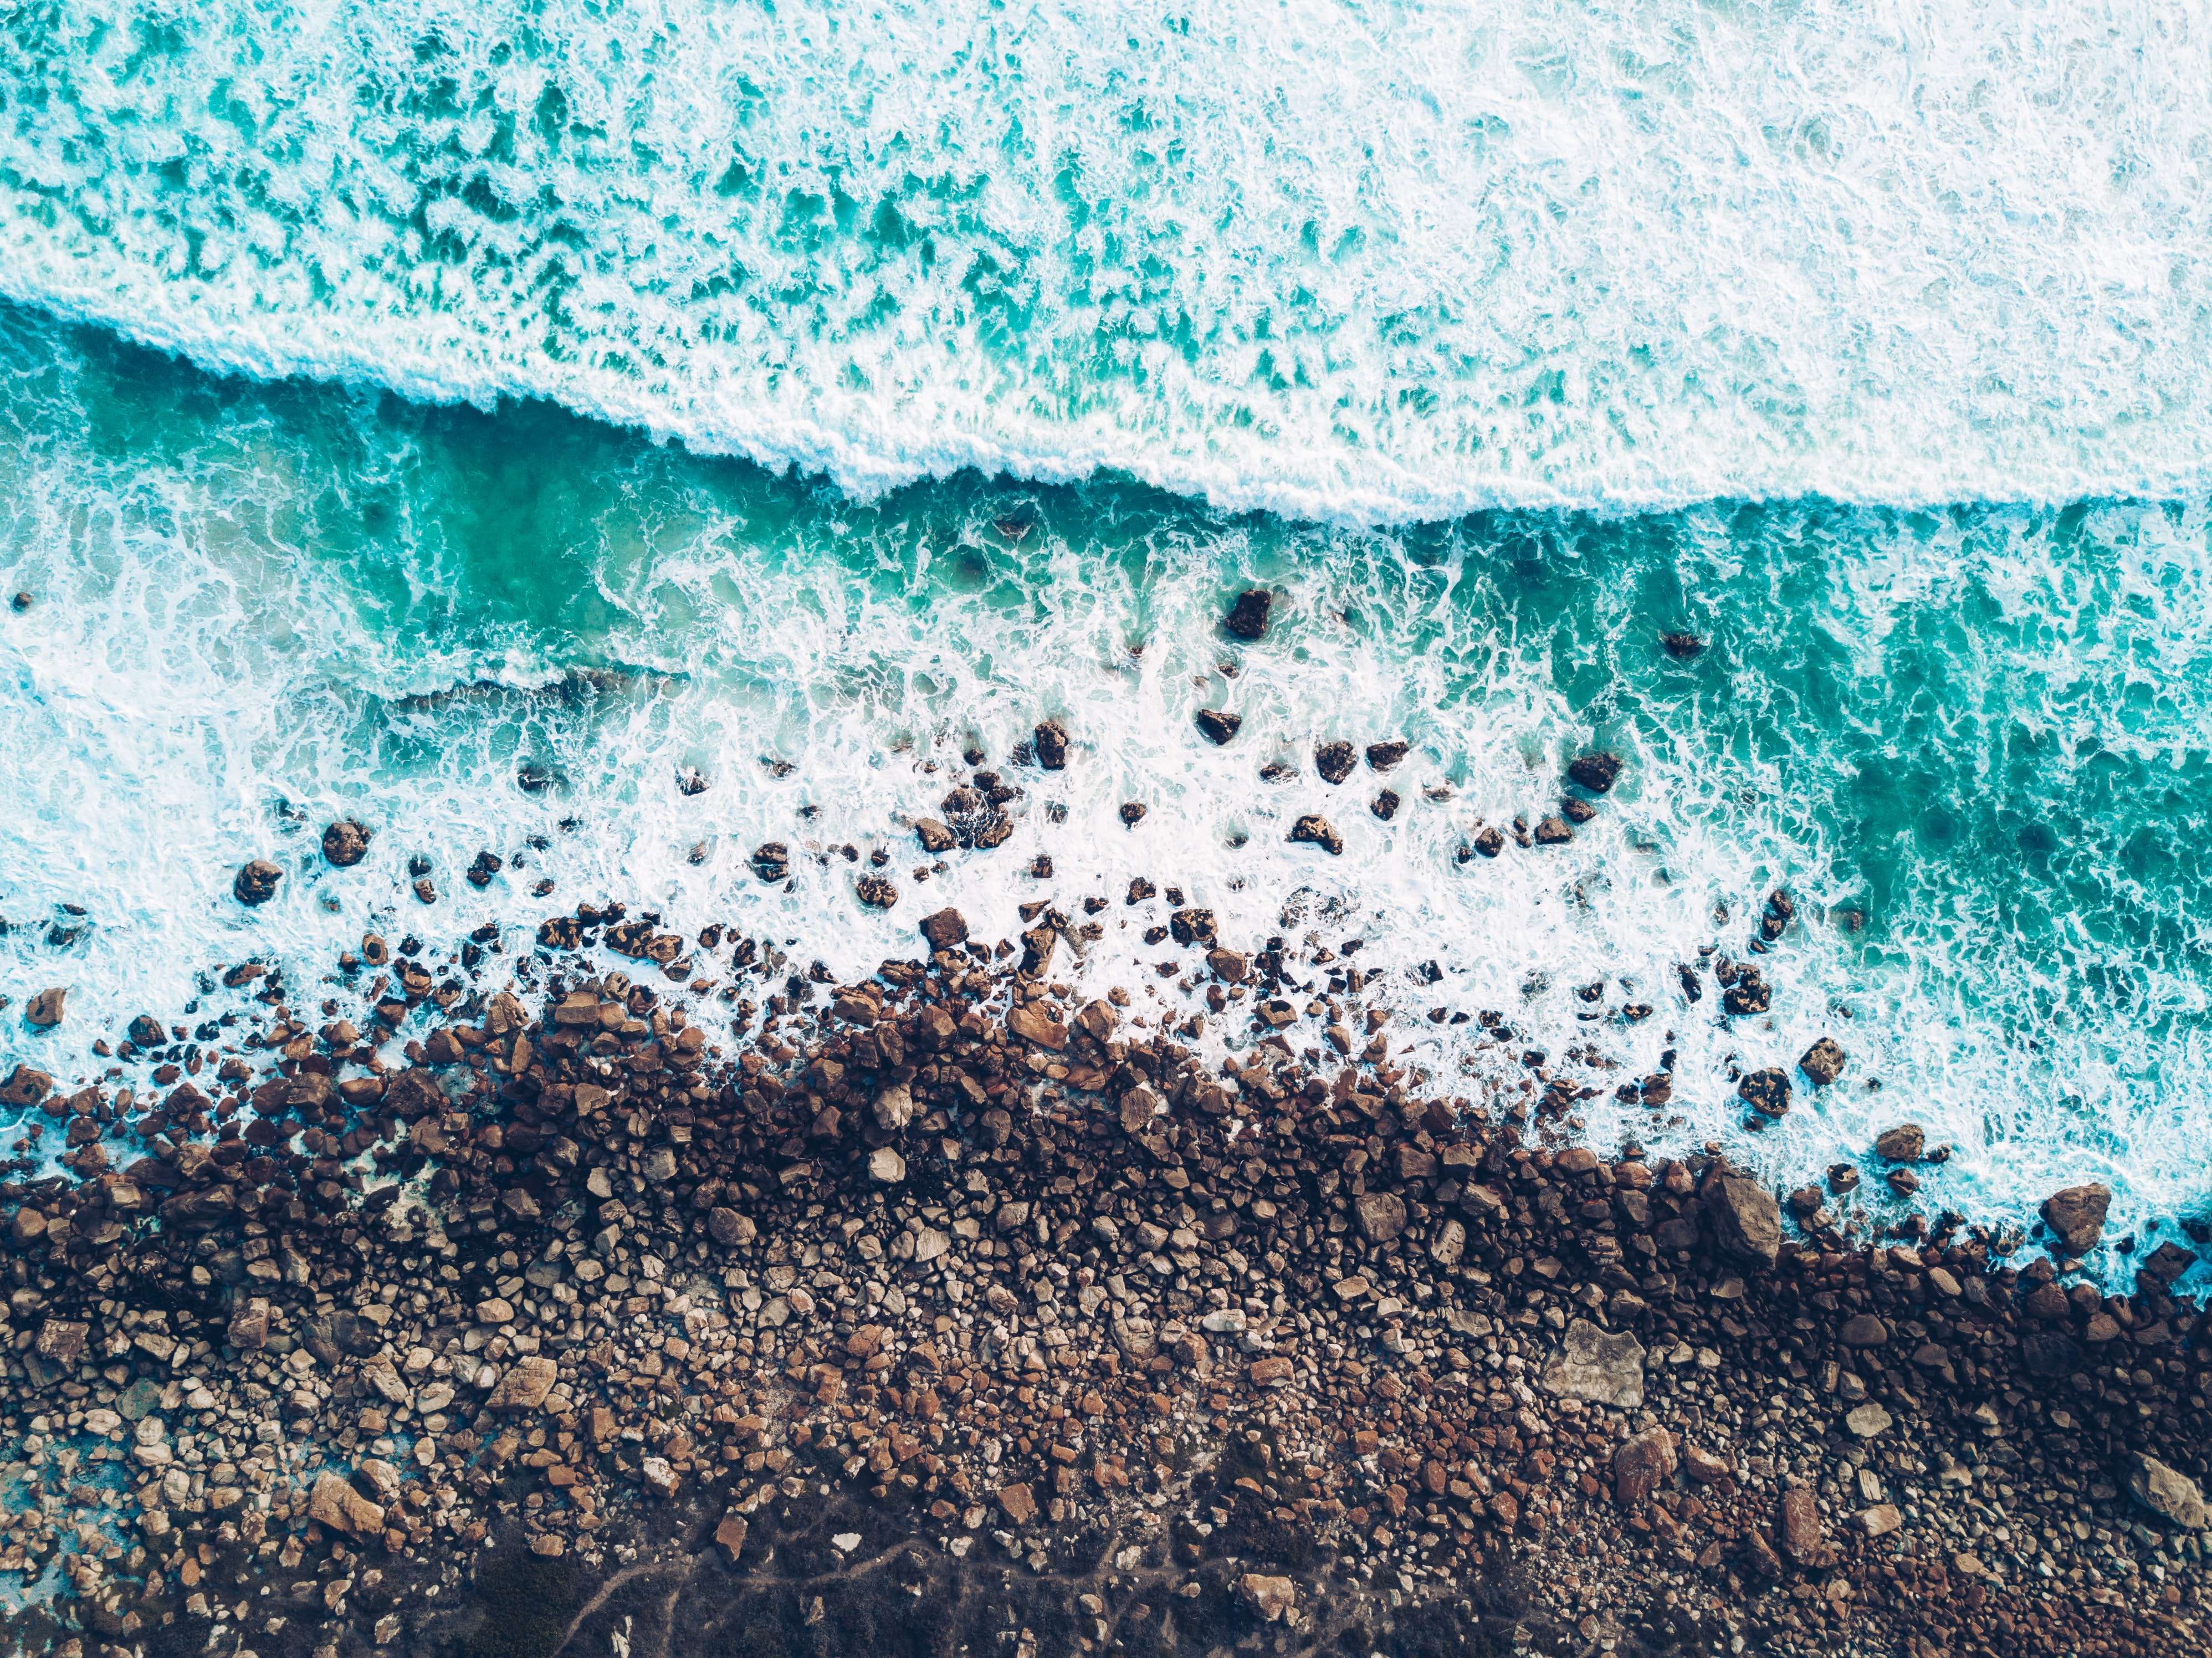 timelapse photo of green sea water and seashore